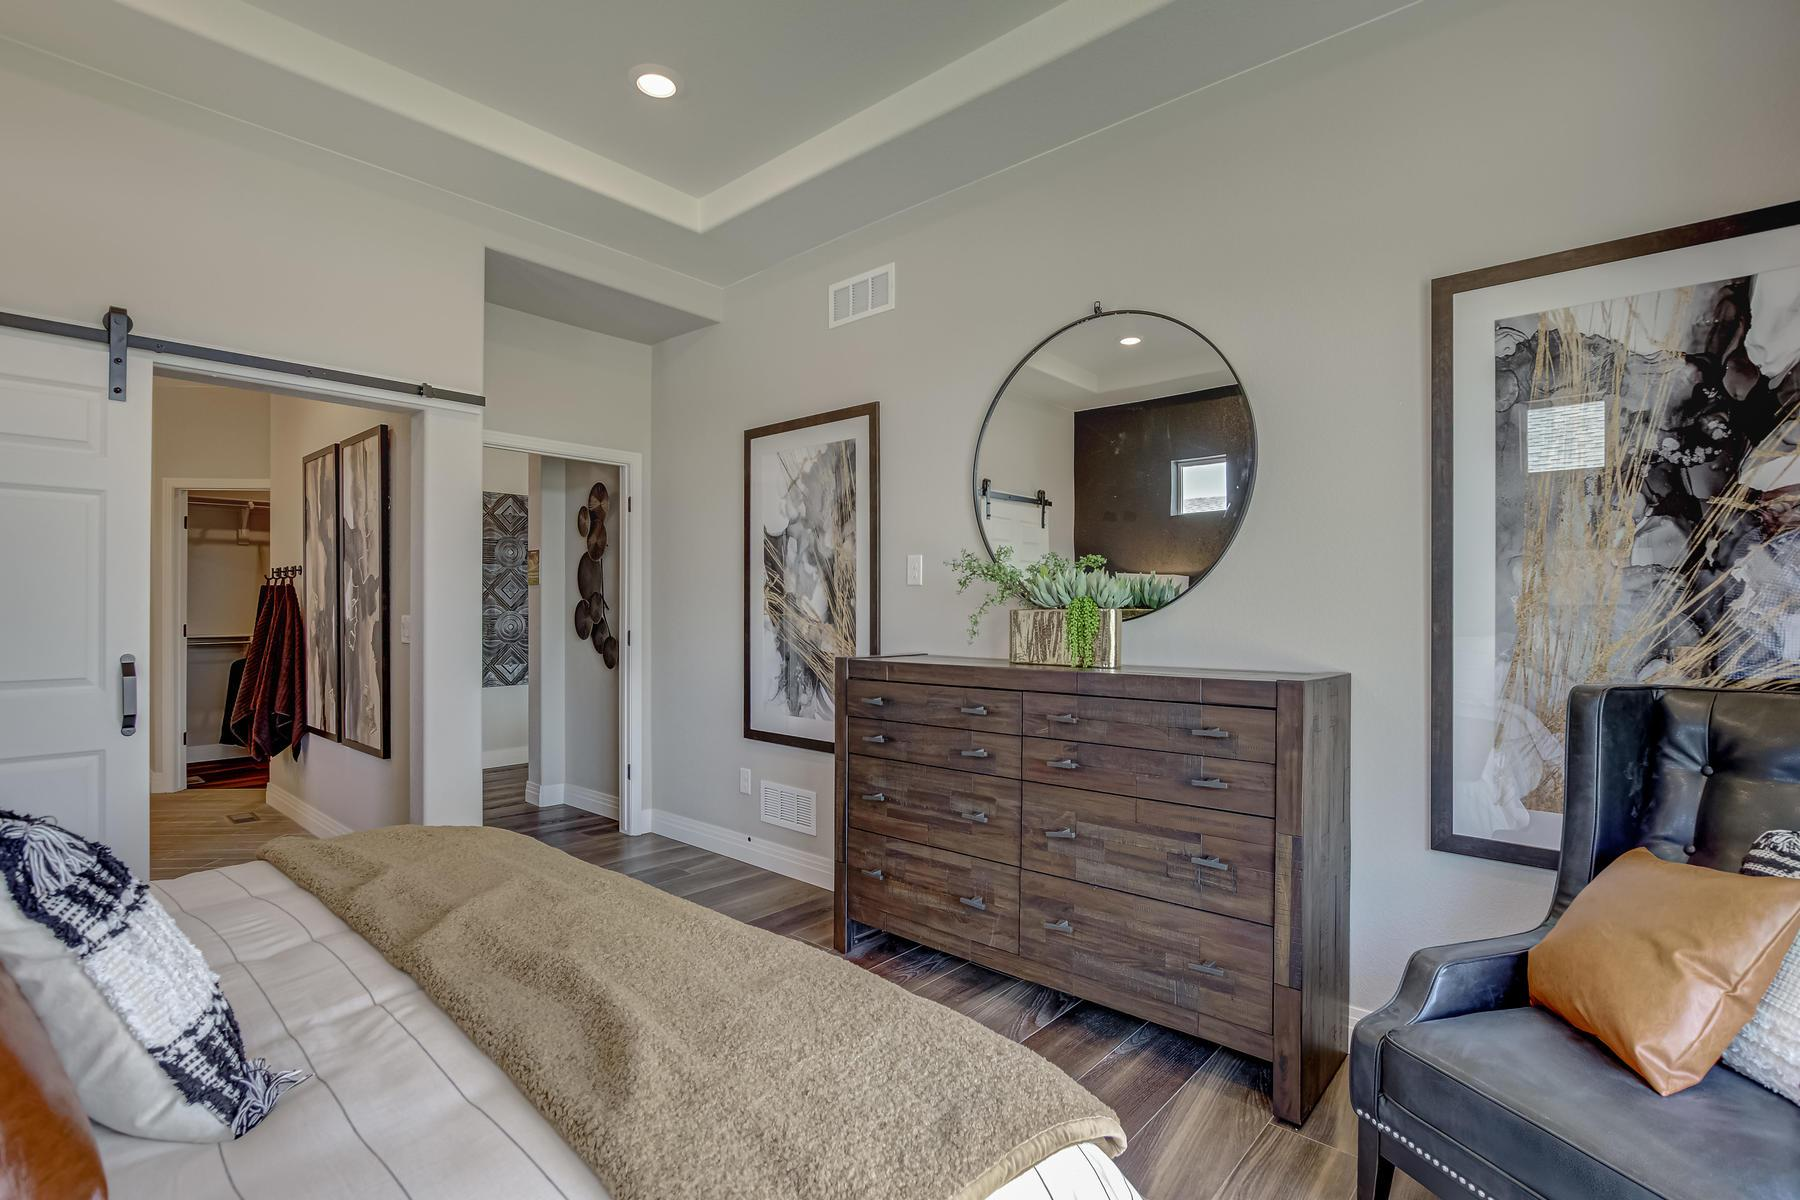 Bedroom featured in the Oasis By OakwoodLife in Denver, CO